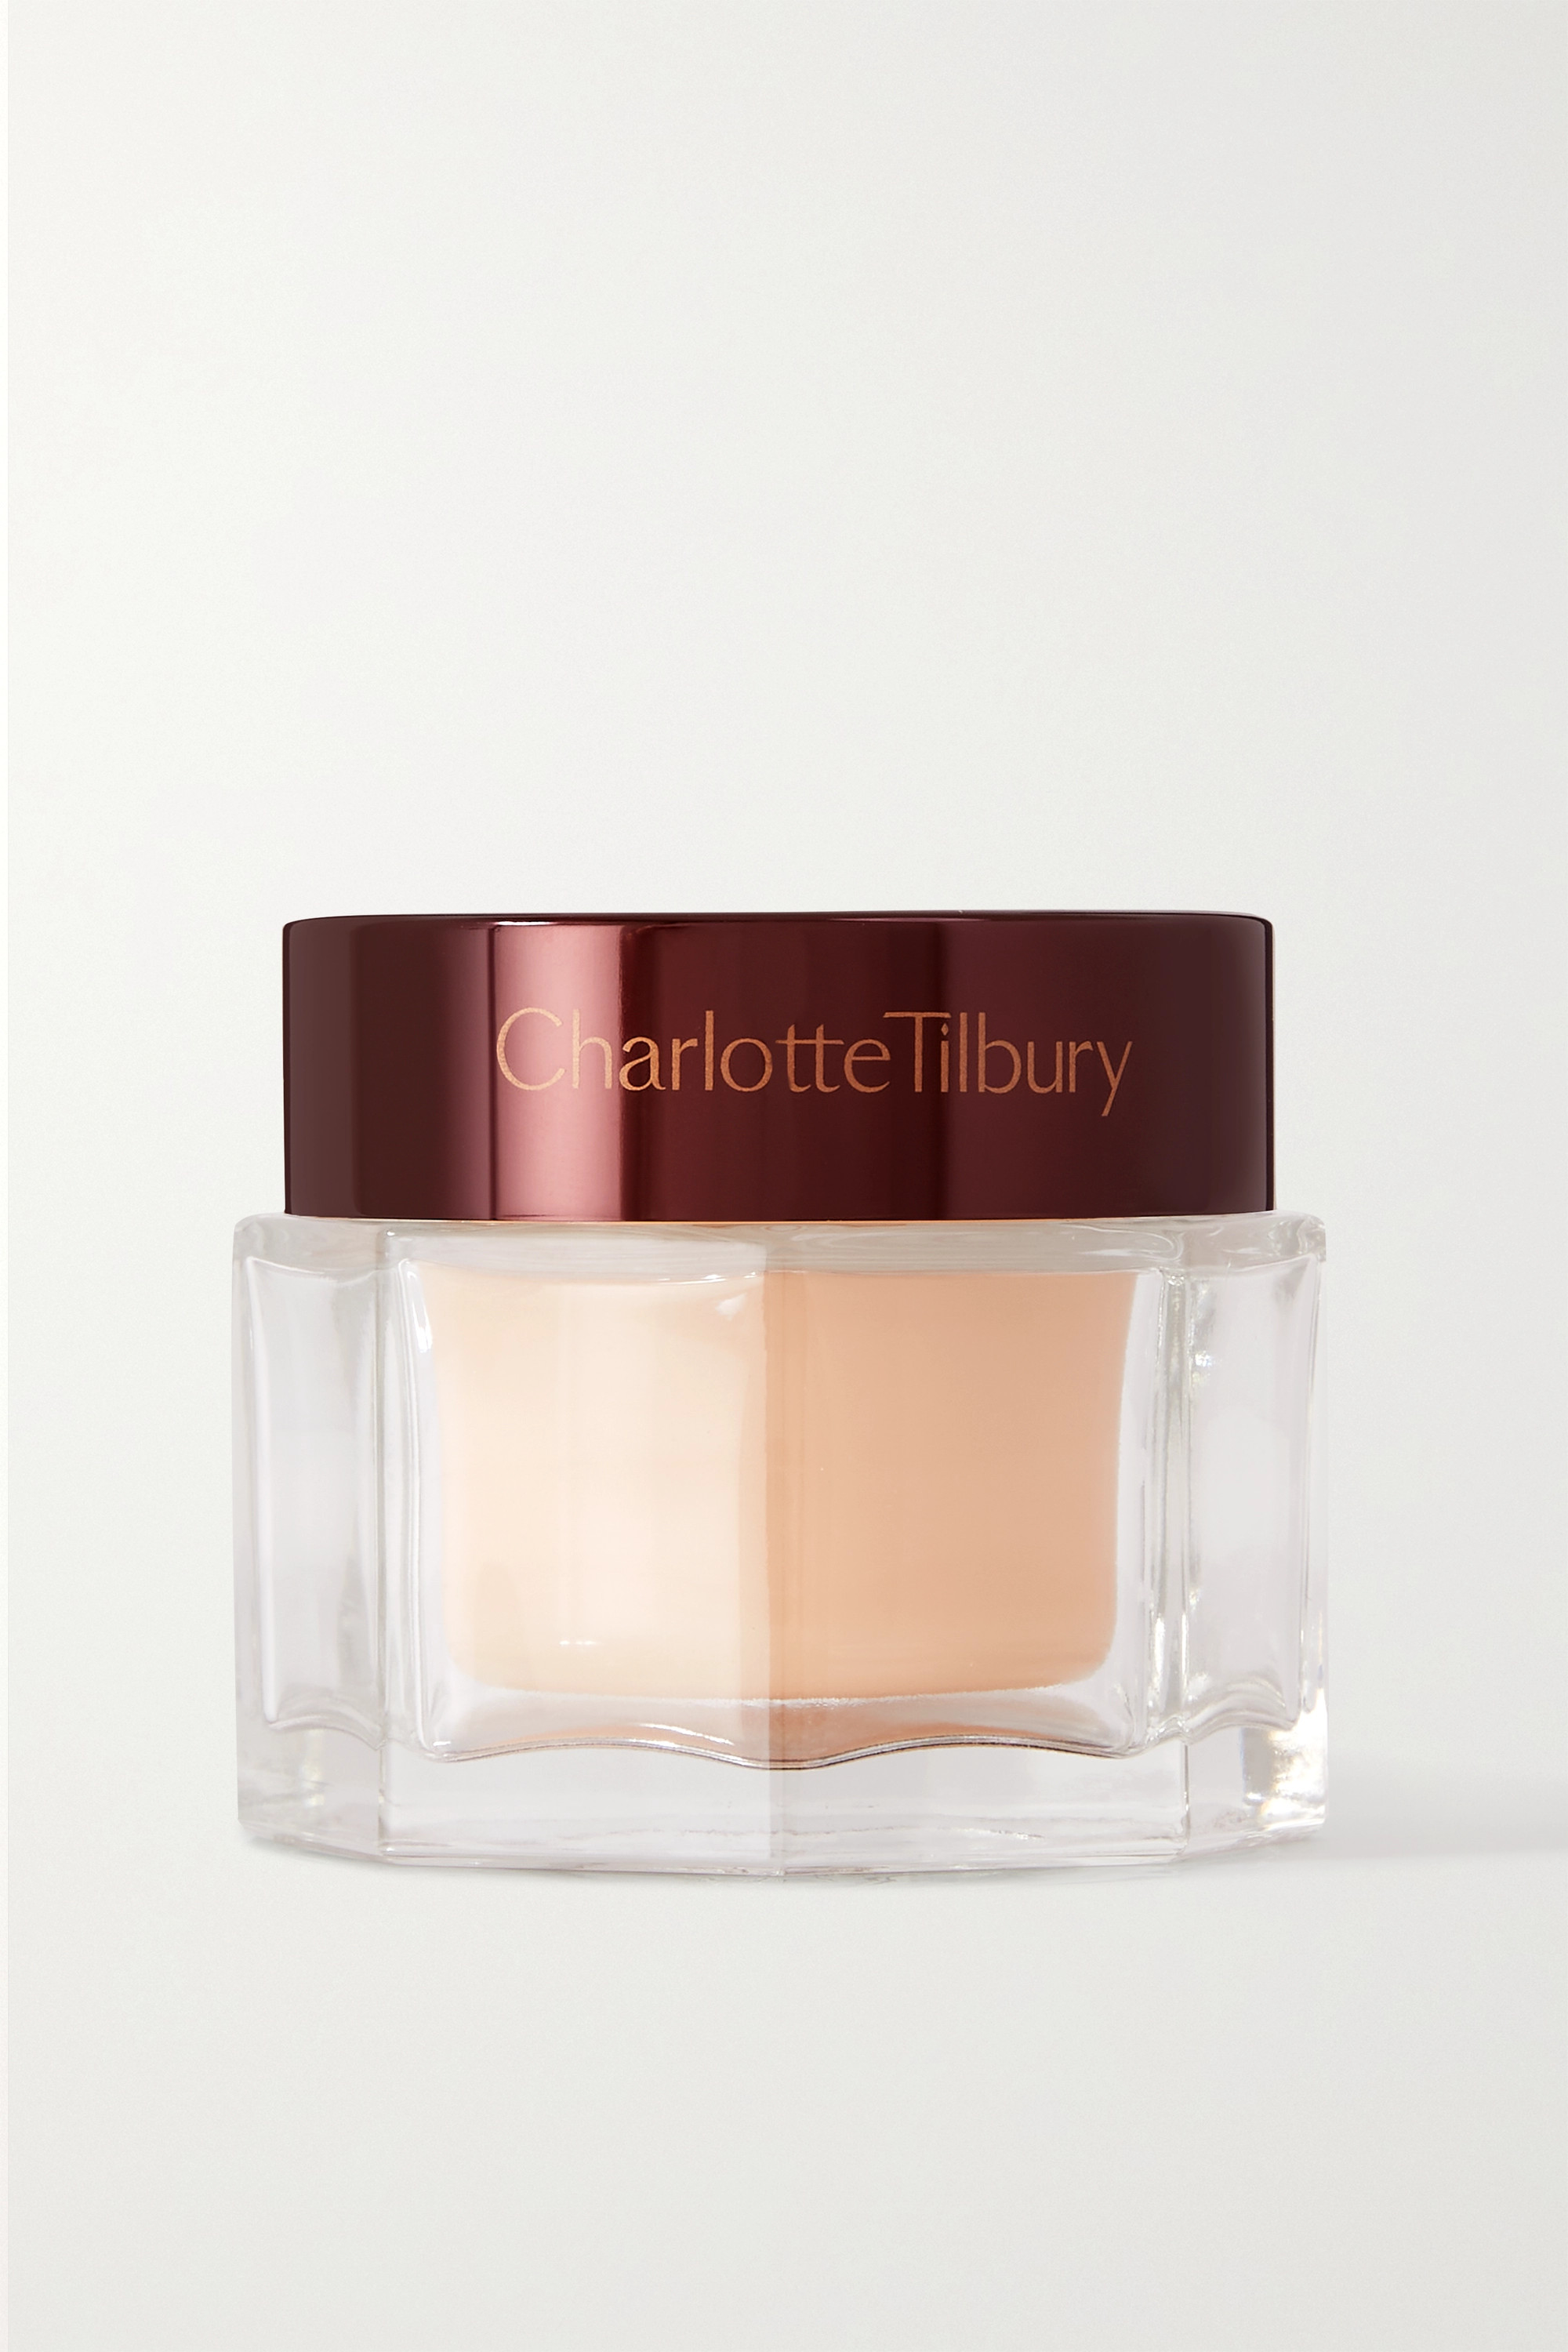 CHARLOTTE TILBURY Magic Night Cream Moisturizer, 50ml